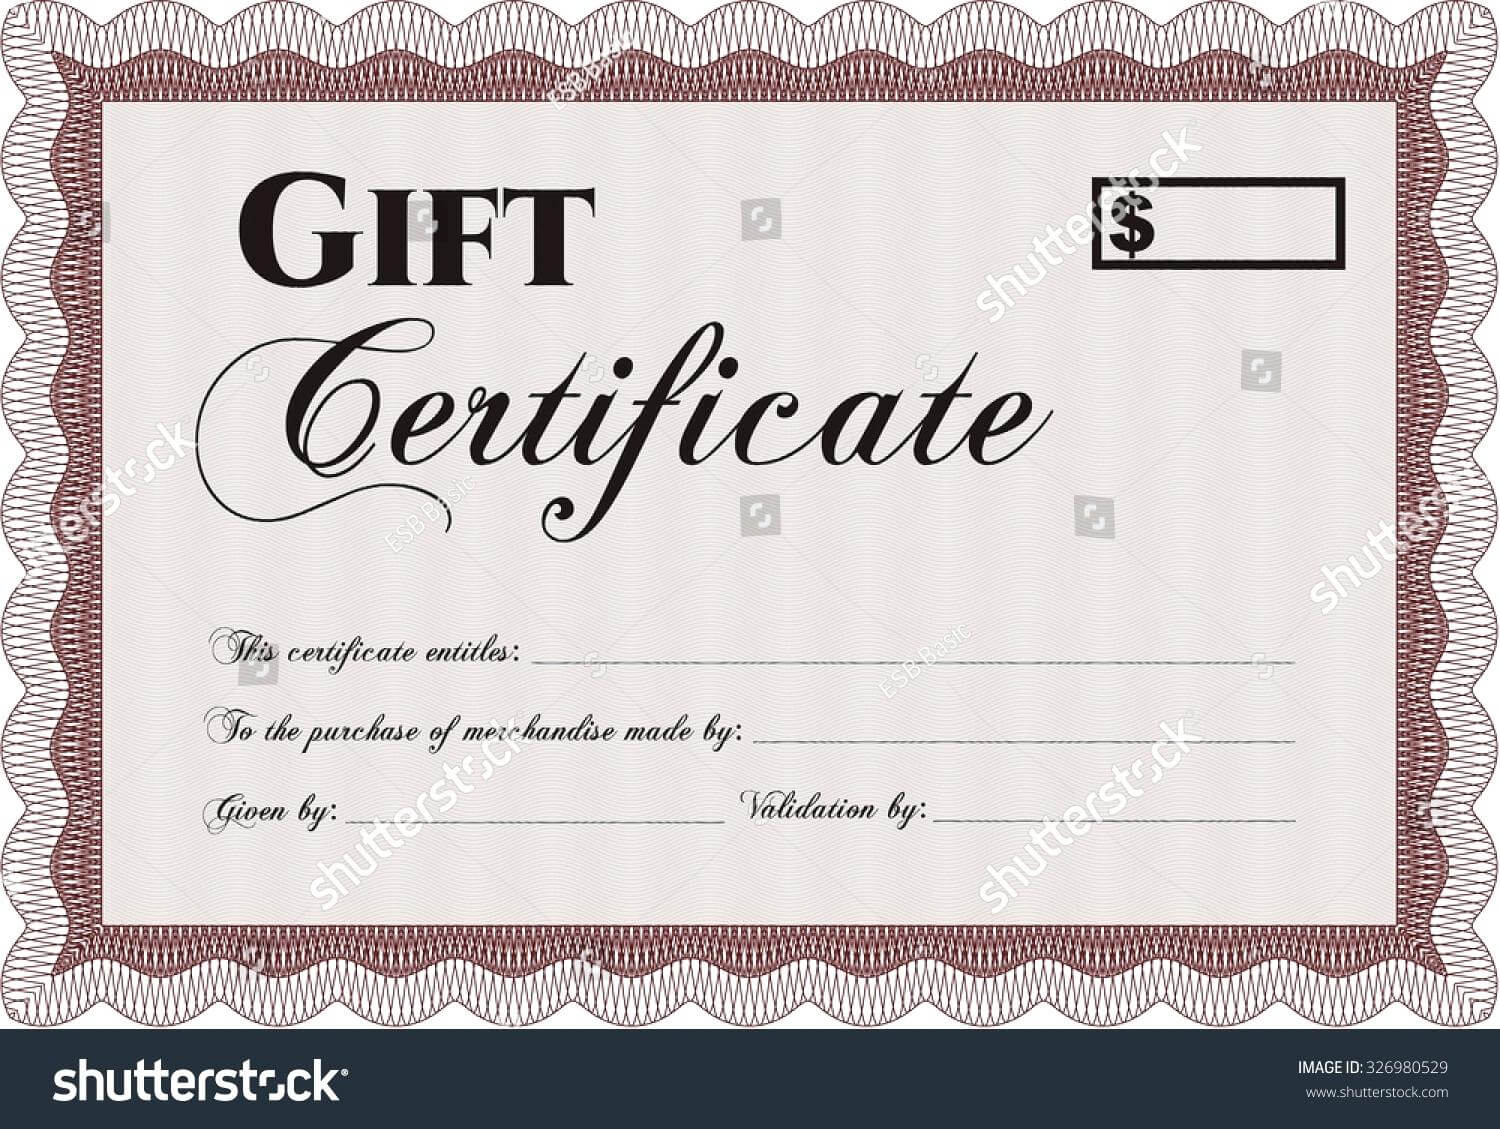 Ideas Collection For This Certificate Entitles The Bearer Regarding This Certificate Entitles The Bearer To Template